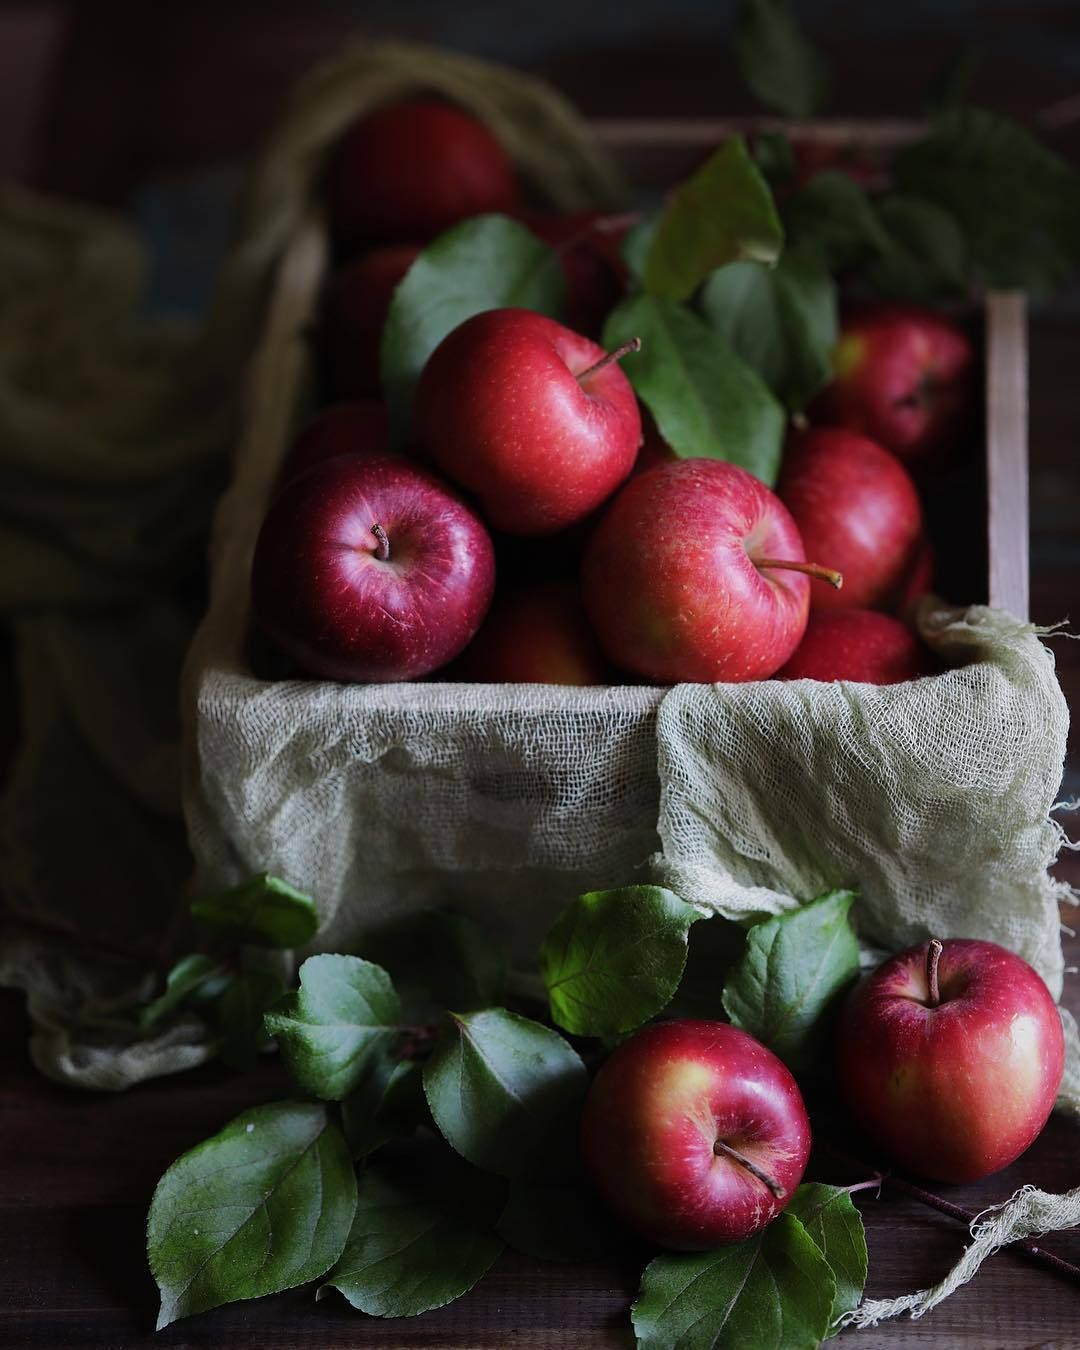 Pin By Jitz Jitz On Food With Images Fruit Apple Fresh Berries